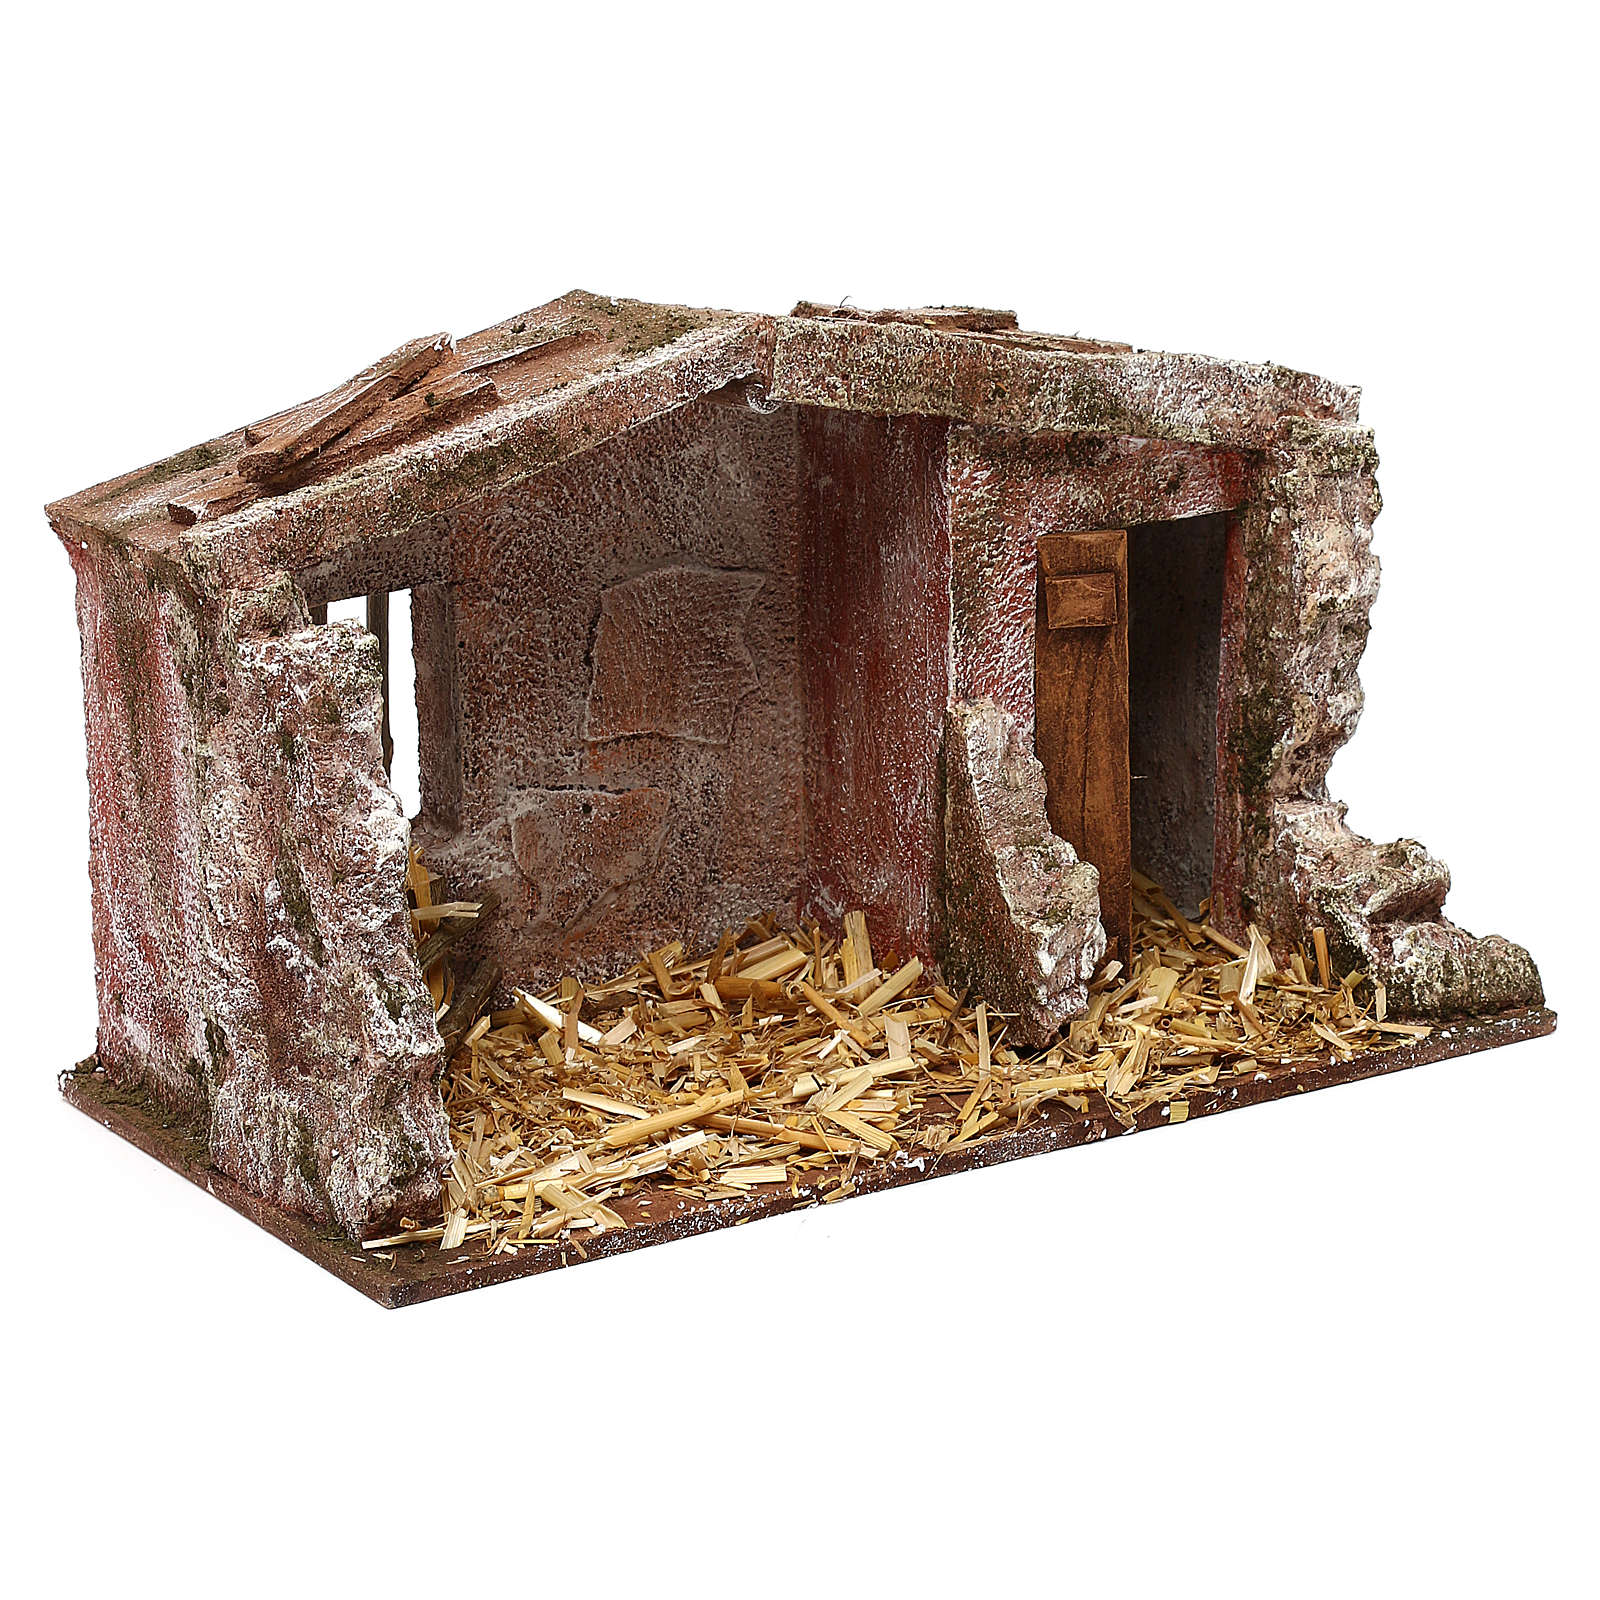 Stone shack in with straw for 10 cm Nativity scene, 20x30x15 cm 4